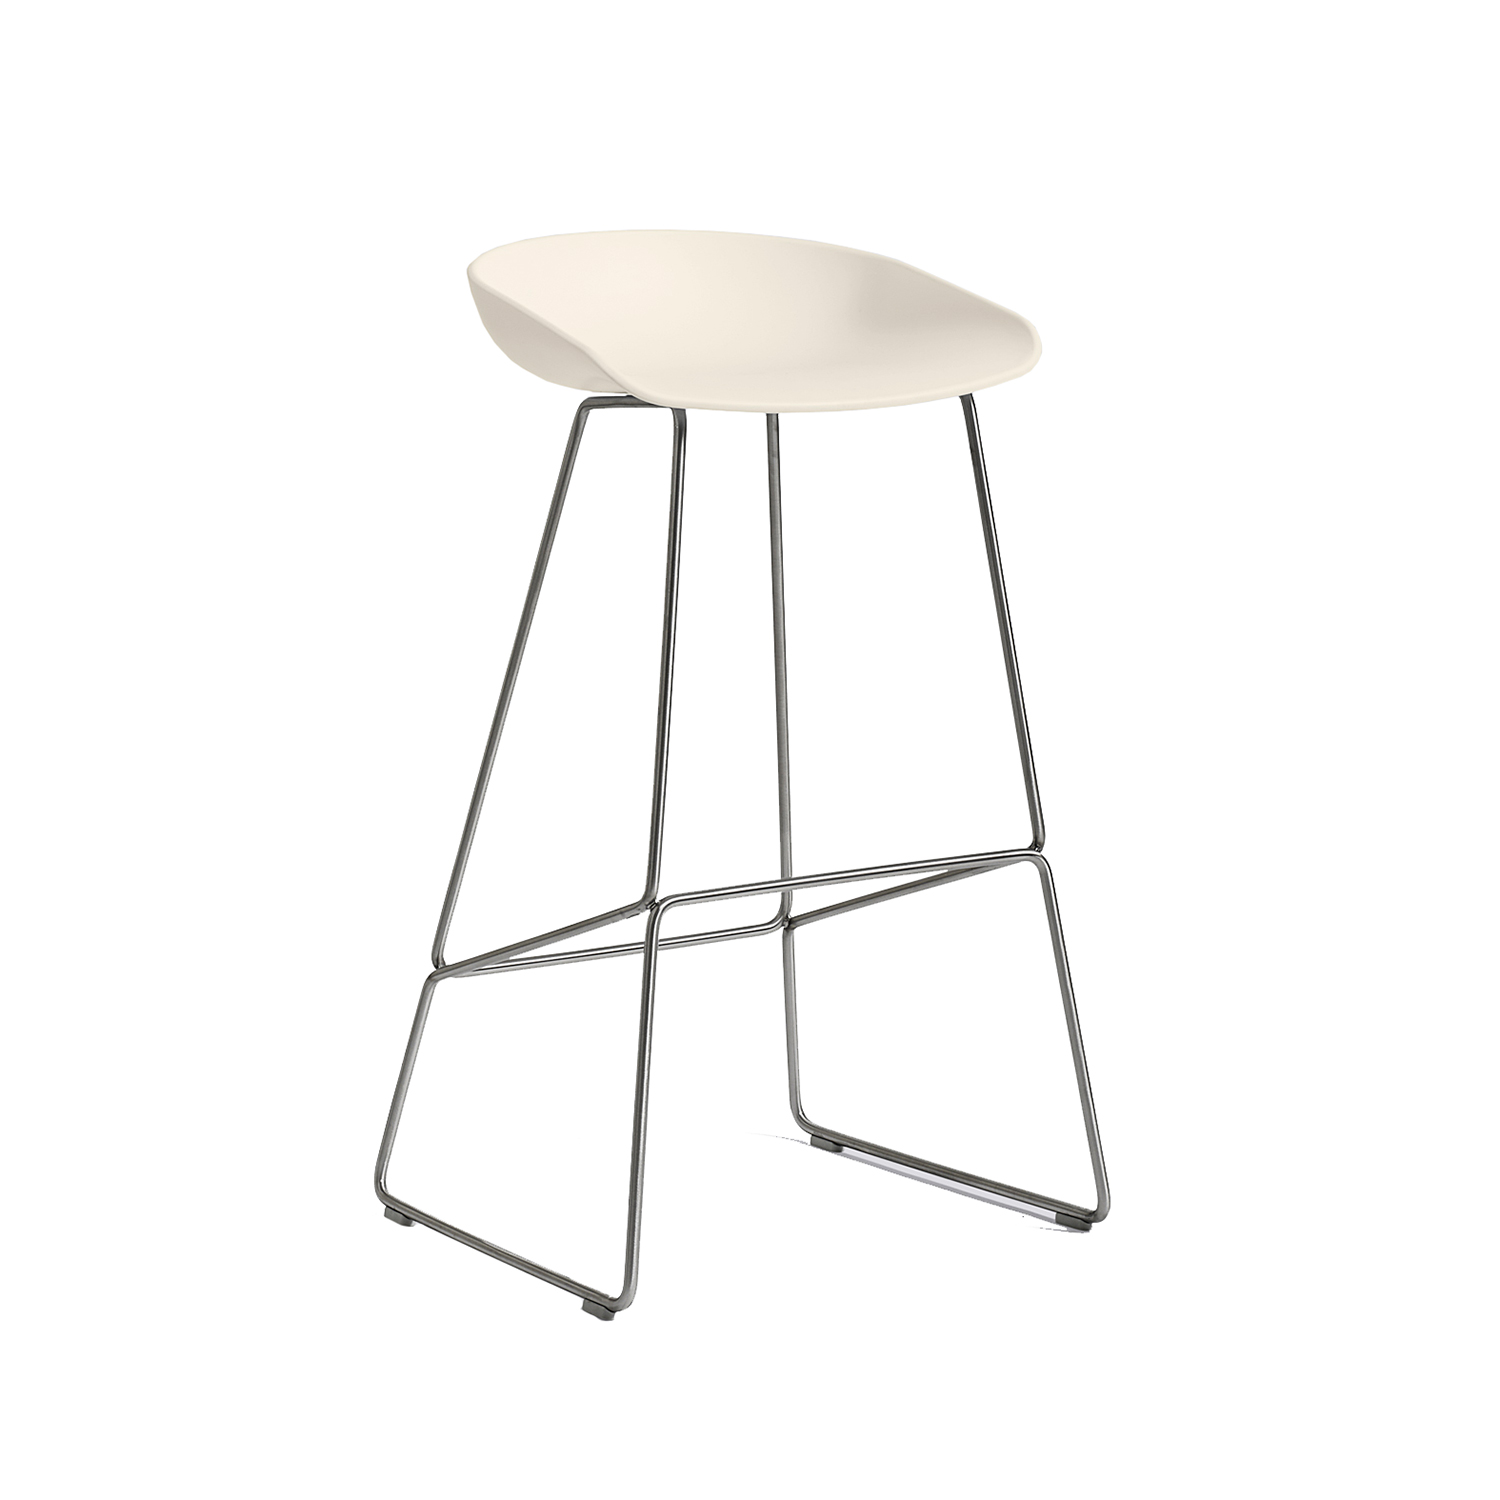 About a Stool 38 barstol h75, cream white/rostfritt